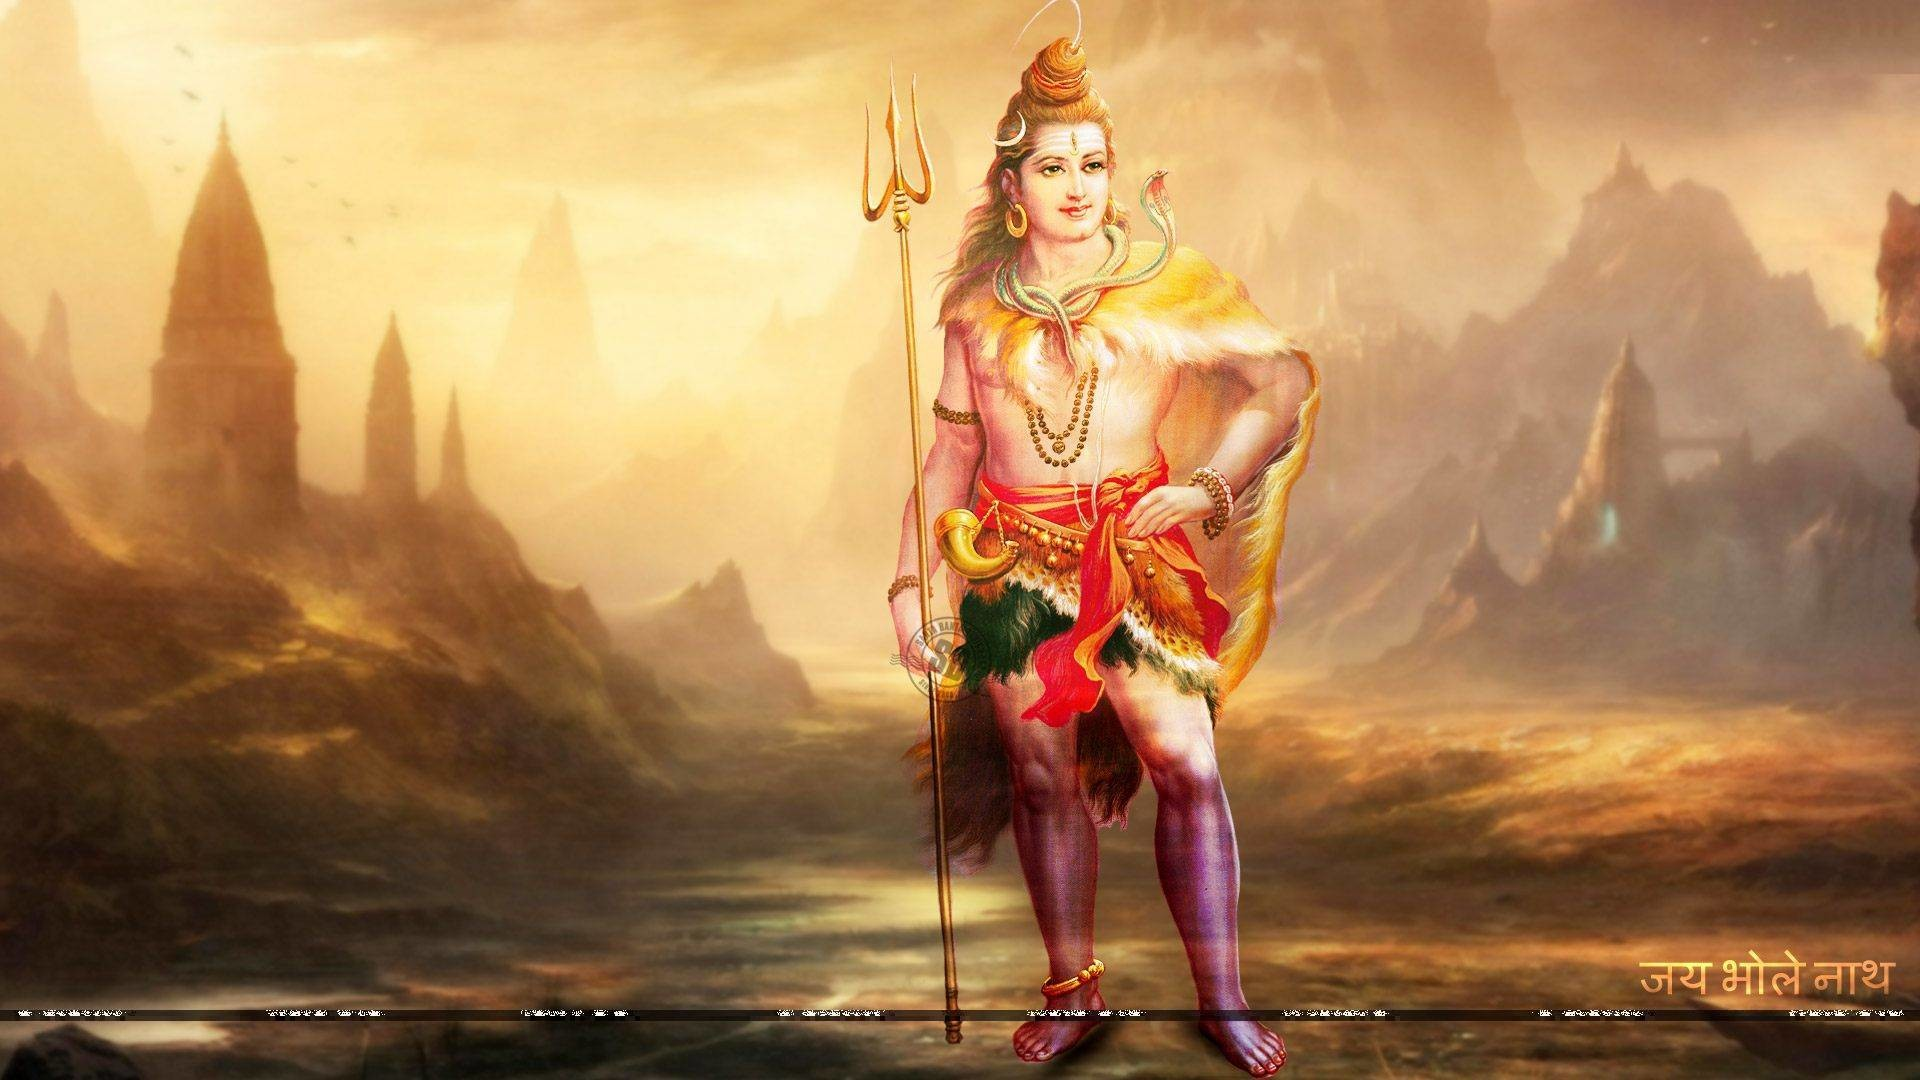 Shiv Shankar 3d Wallpaper Free Download Lord Shiva Wallpapers High Resolution 73 Images